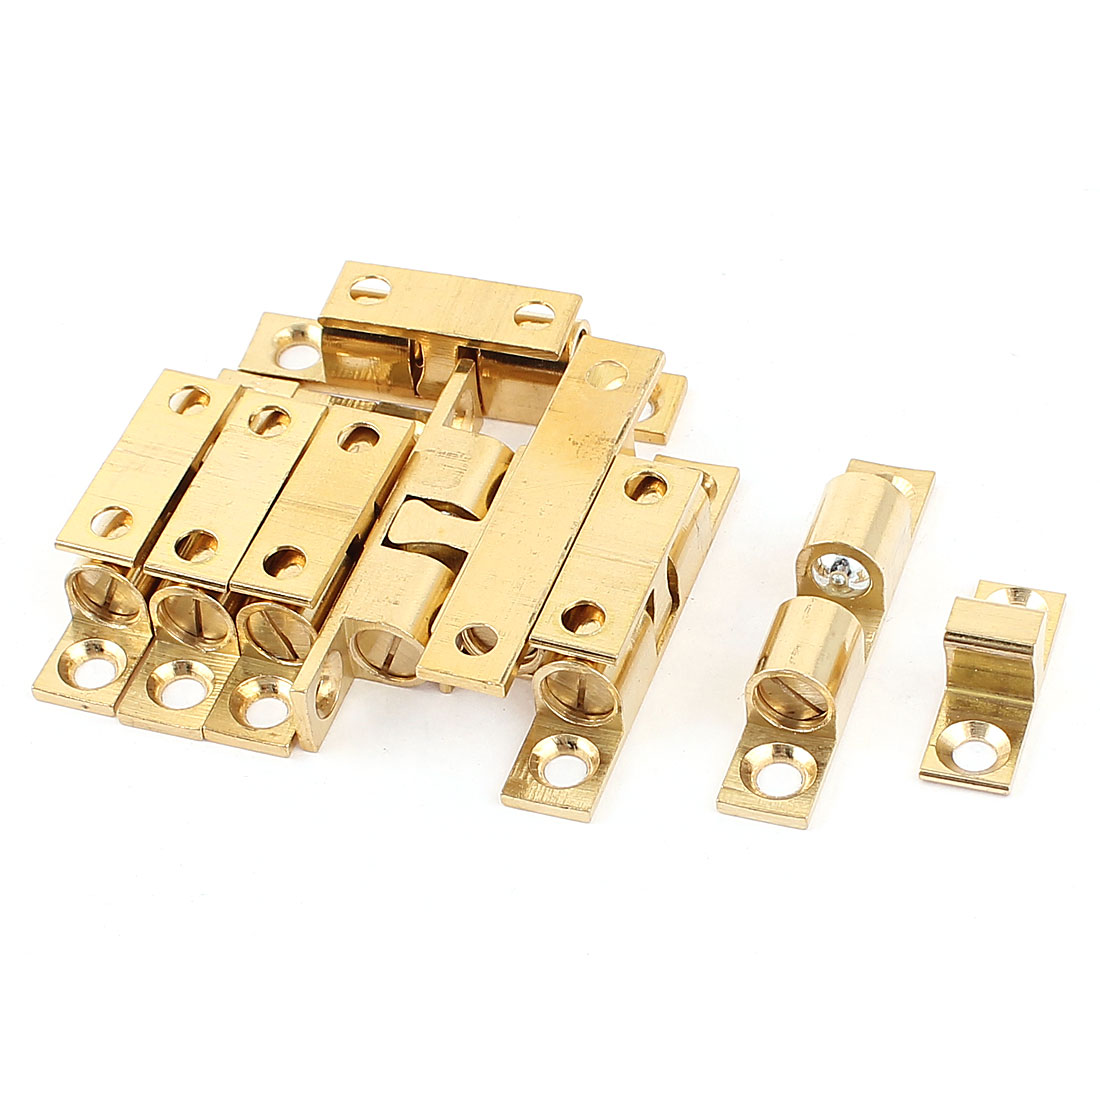 Ajustable Door Mortice Double Ball Catch Latch 42mm Length 8pcs